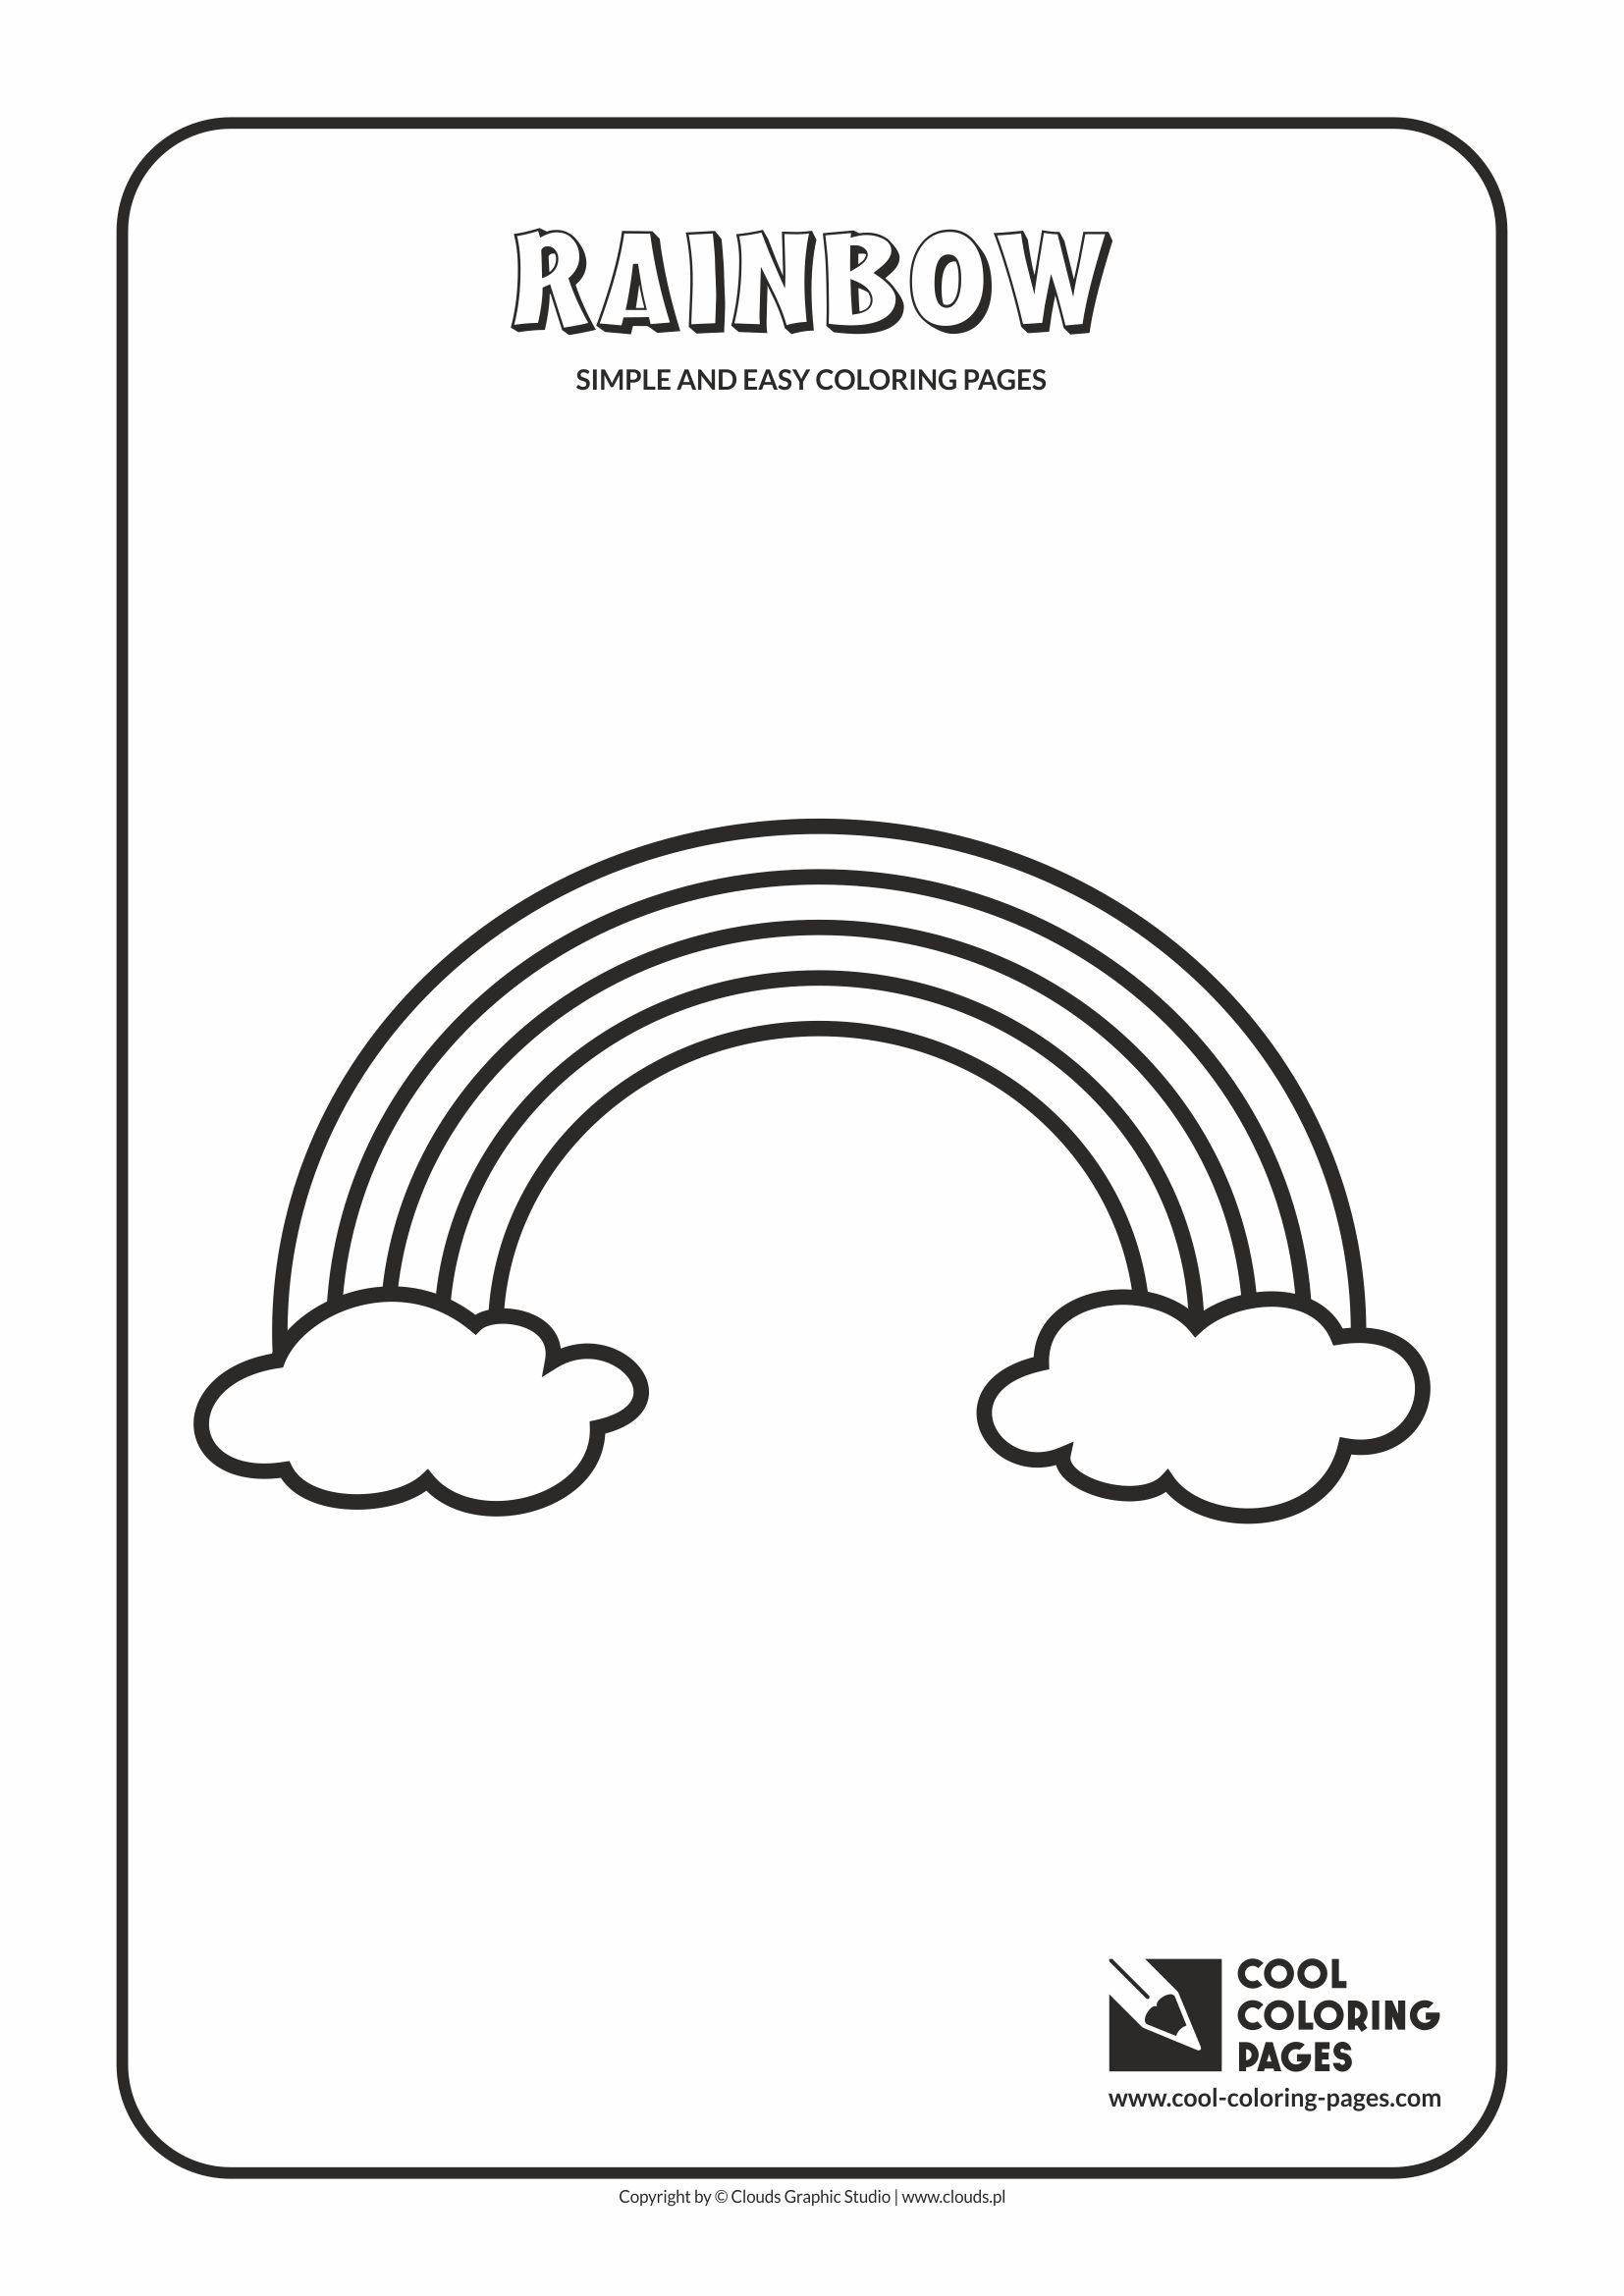 Simple and easy coloring pages for toddlers - Rainbow